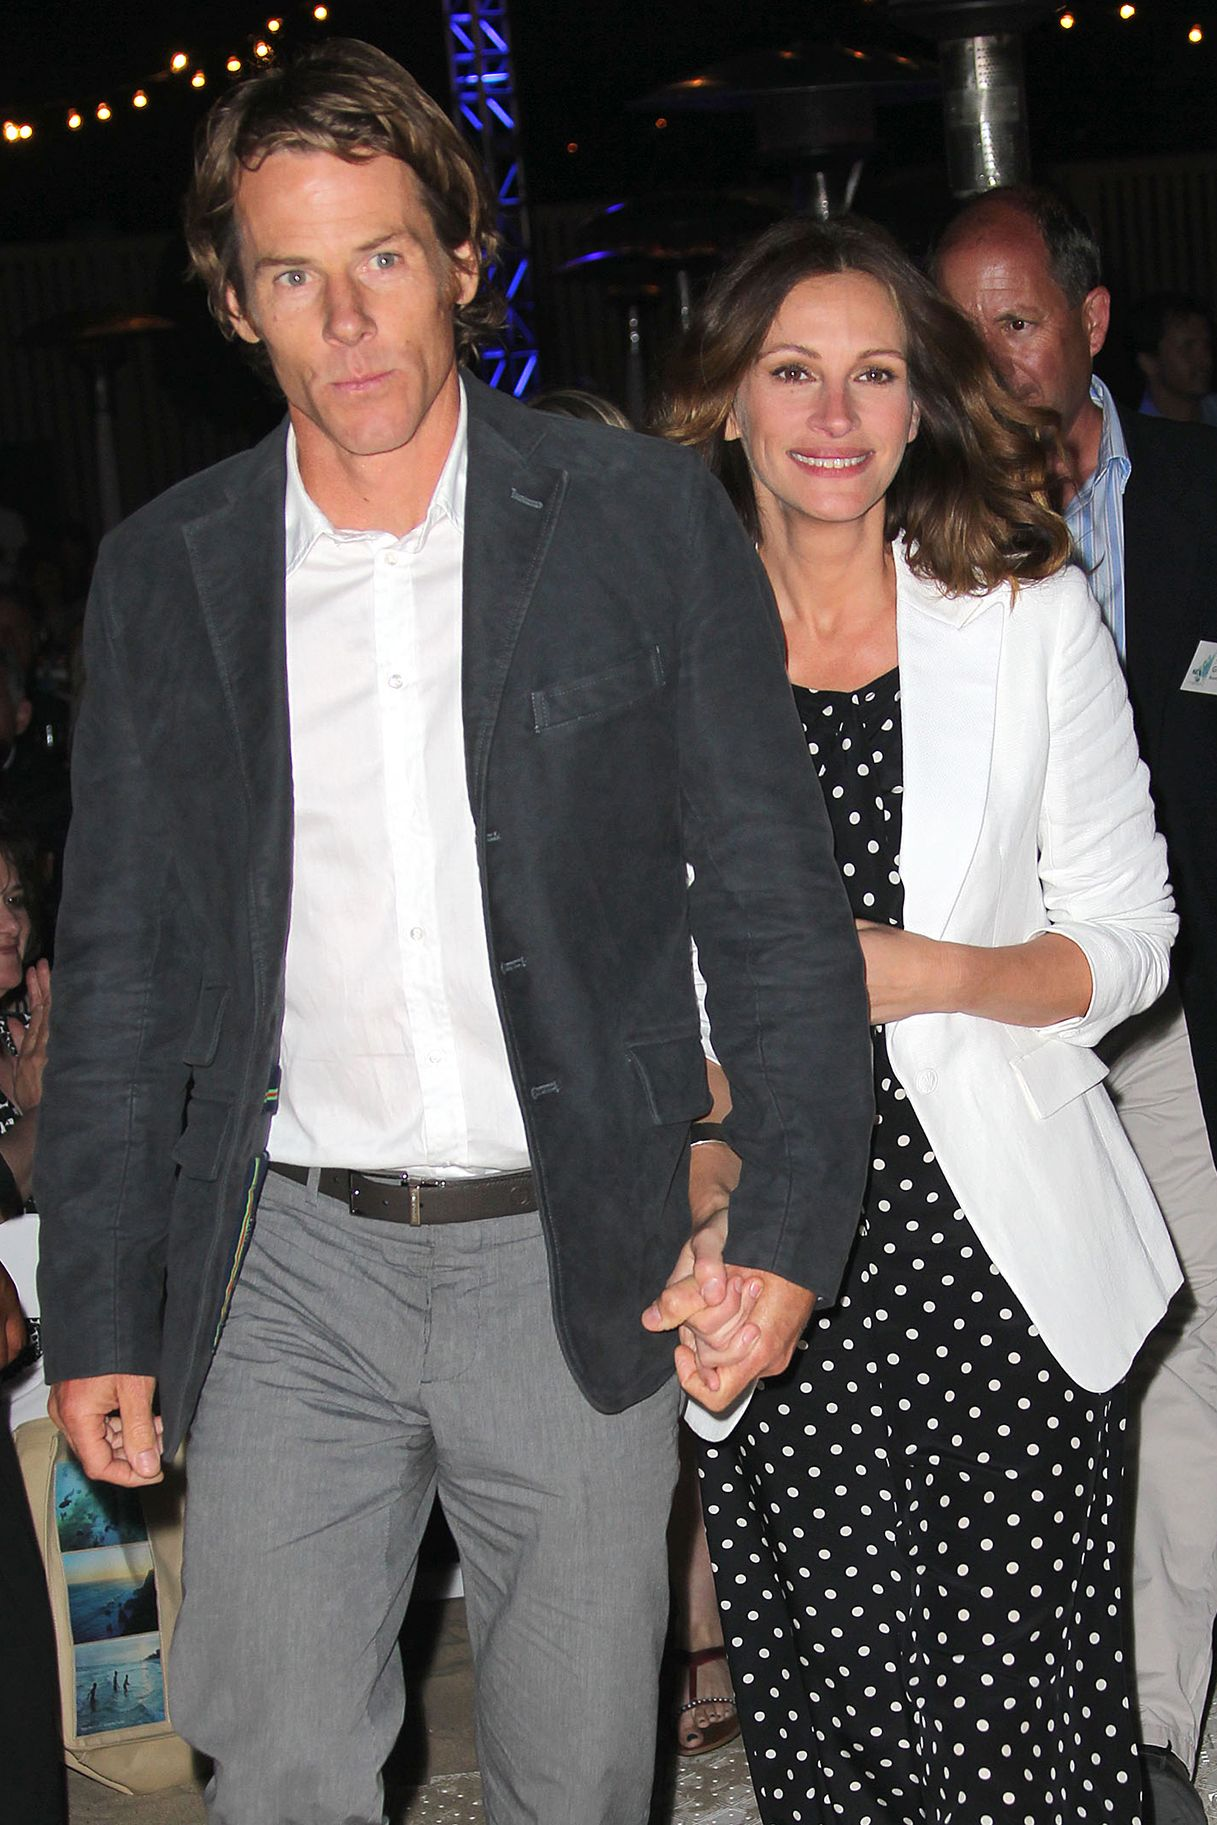 Here are celebrities who happily married and mated with